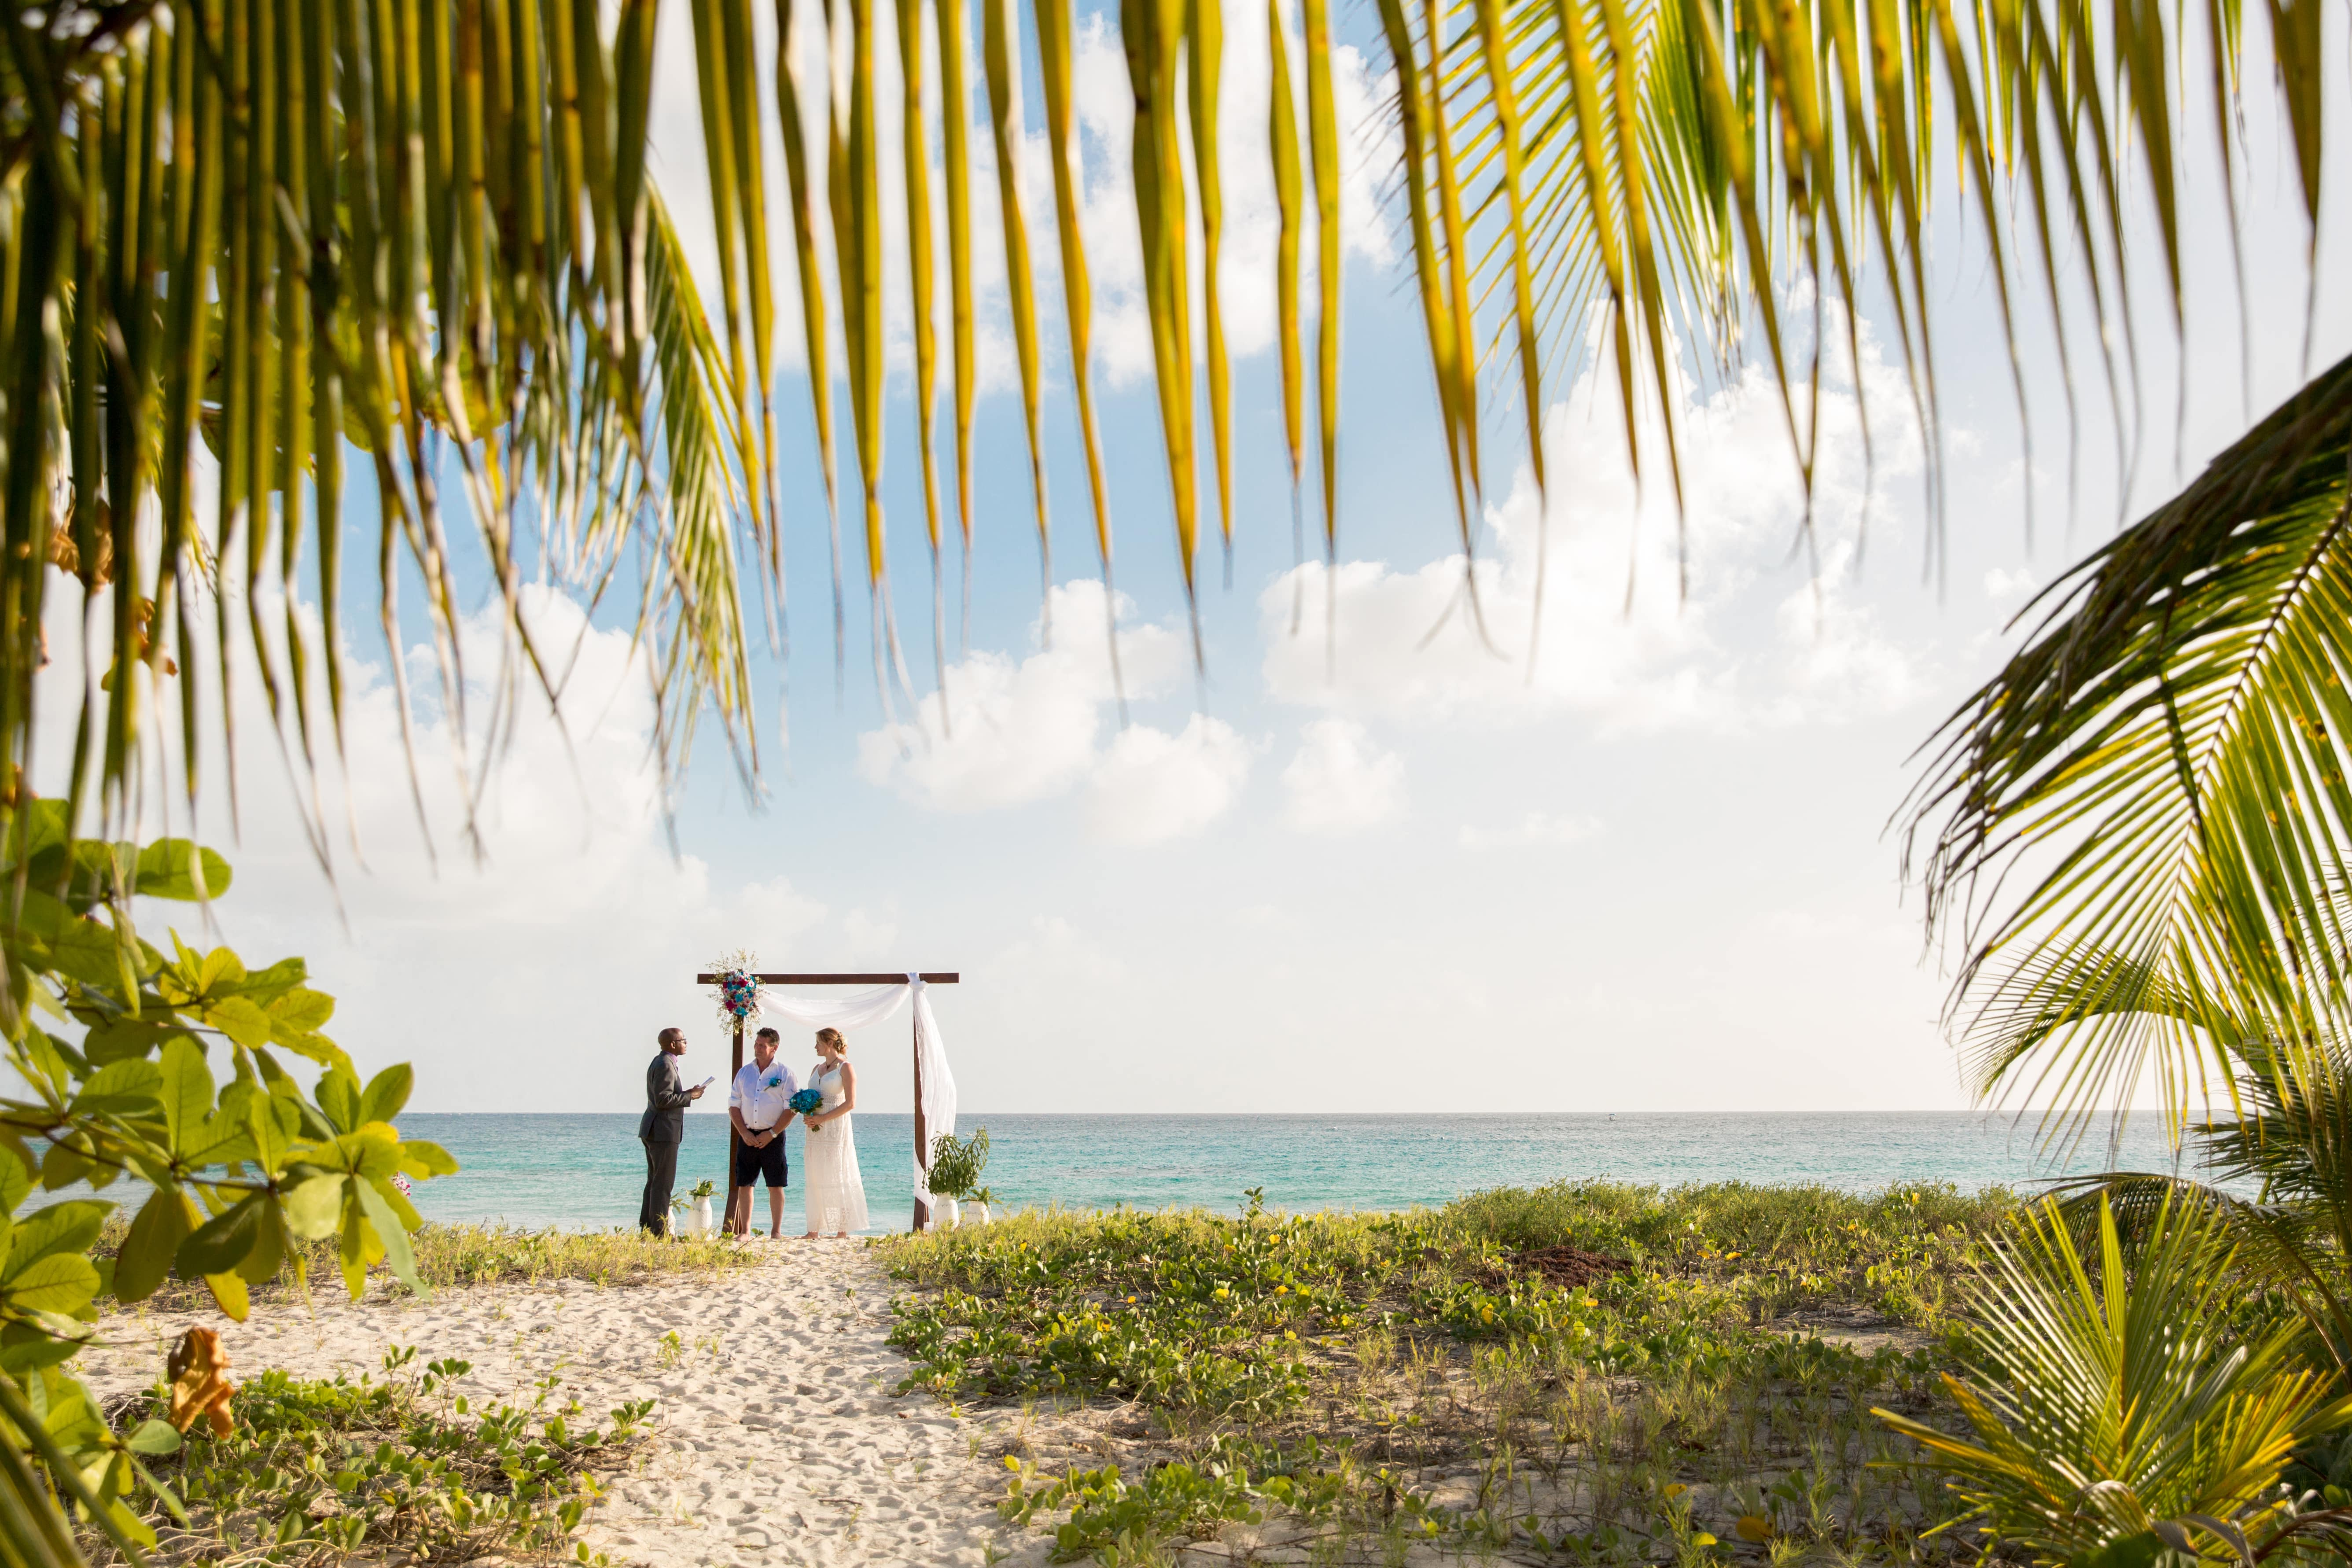 Elopement Series: Guide to Eloping to Barbados, Written by Elope Barbados for Caribbean wedding blog Adriana Weddings